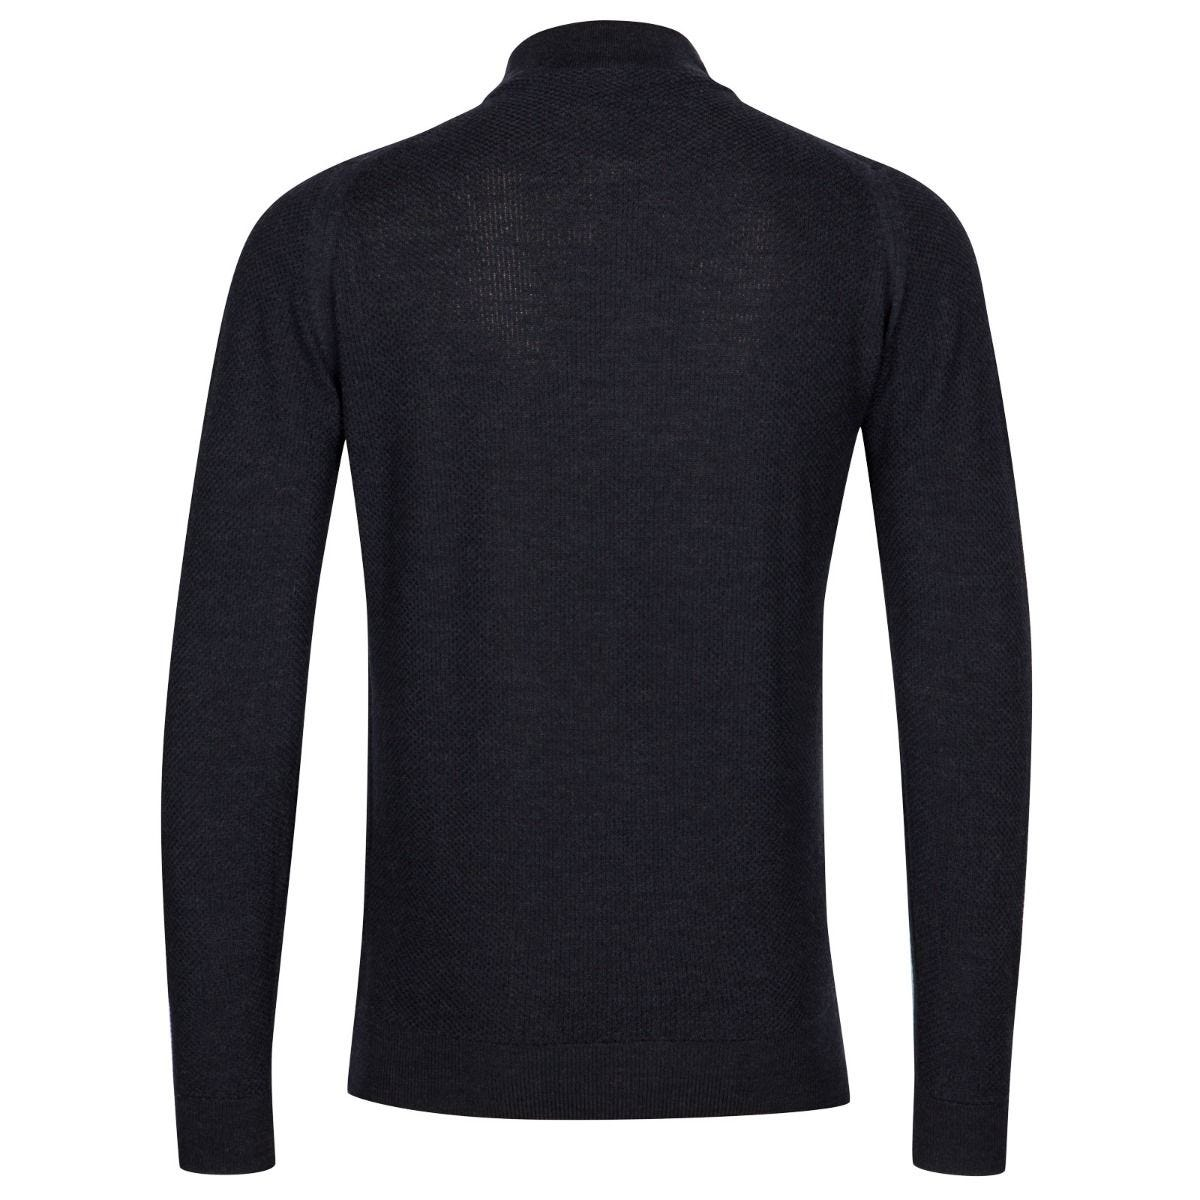 John Smedley - 6SINGULAR Honeycomb Full Zip in Hepburn Smoke